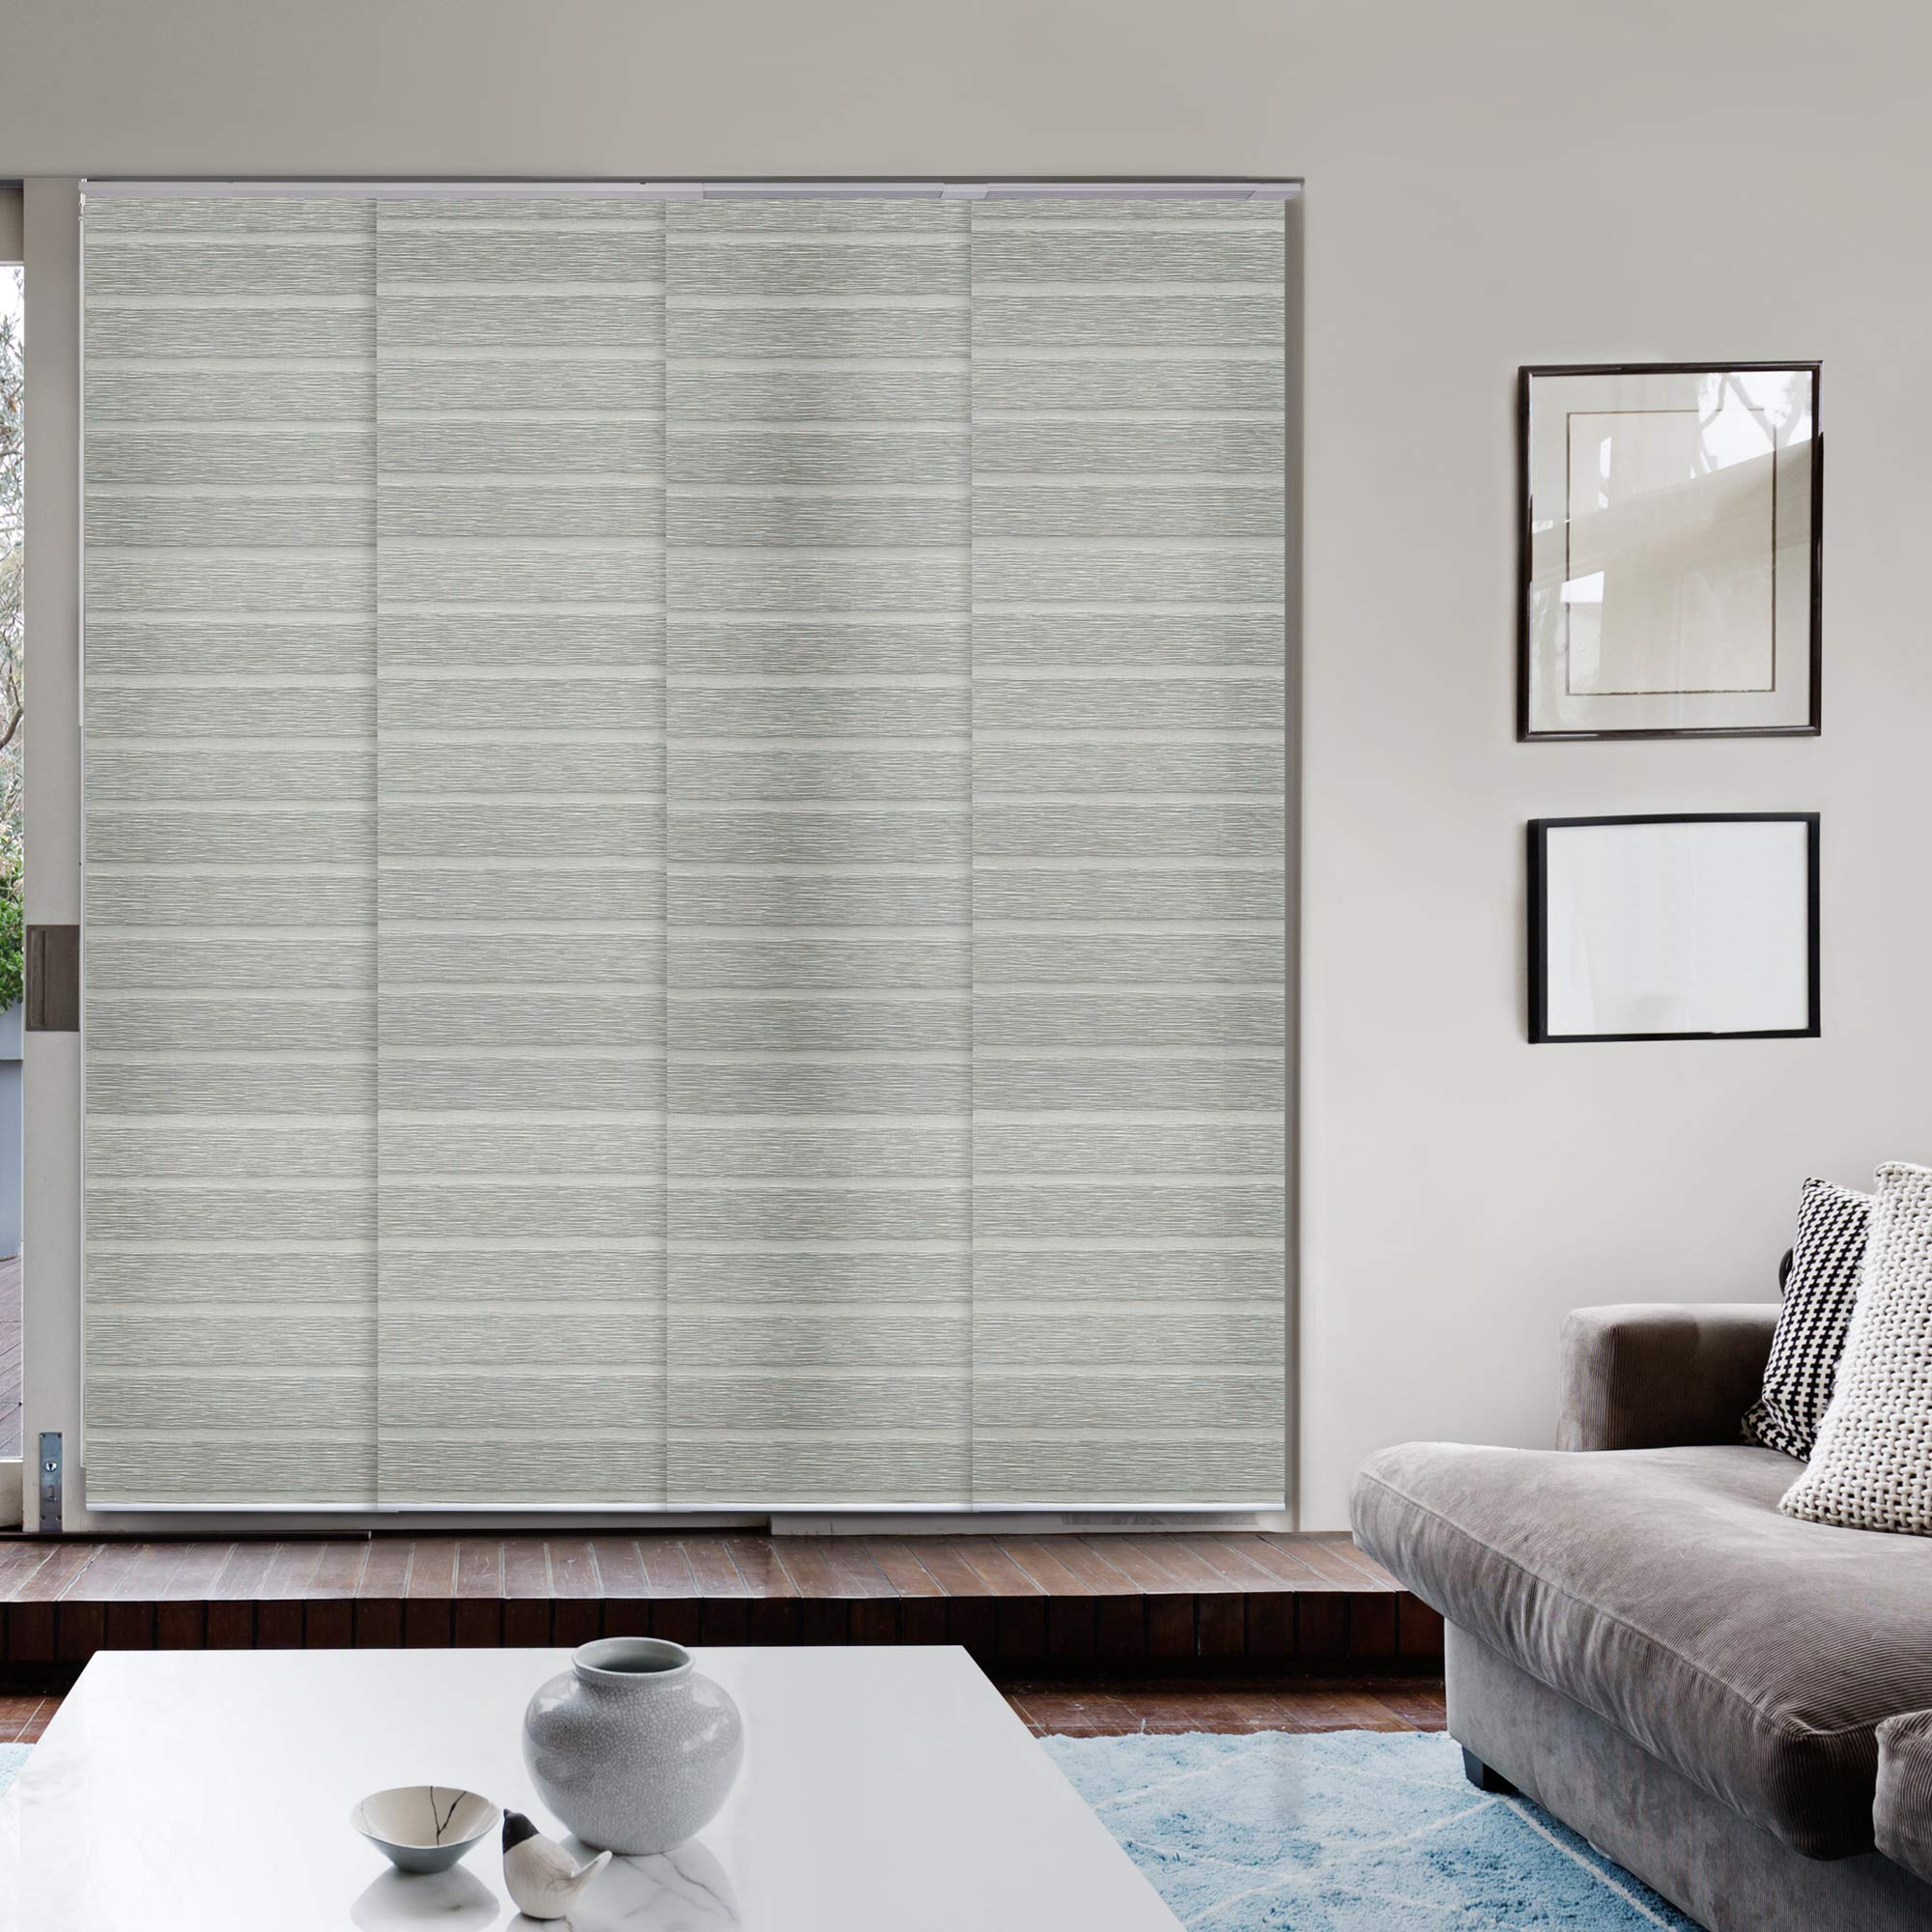 Godear Design Deluxe Adjustable Sliding Panel 45.8''-86'' x 96'', 4-Rail, Pleated Natural Woven Fabric, Pigeon by Godear Design